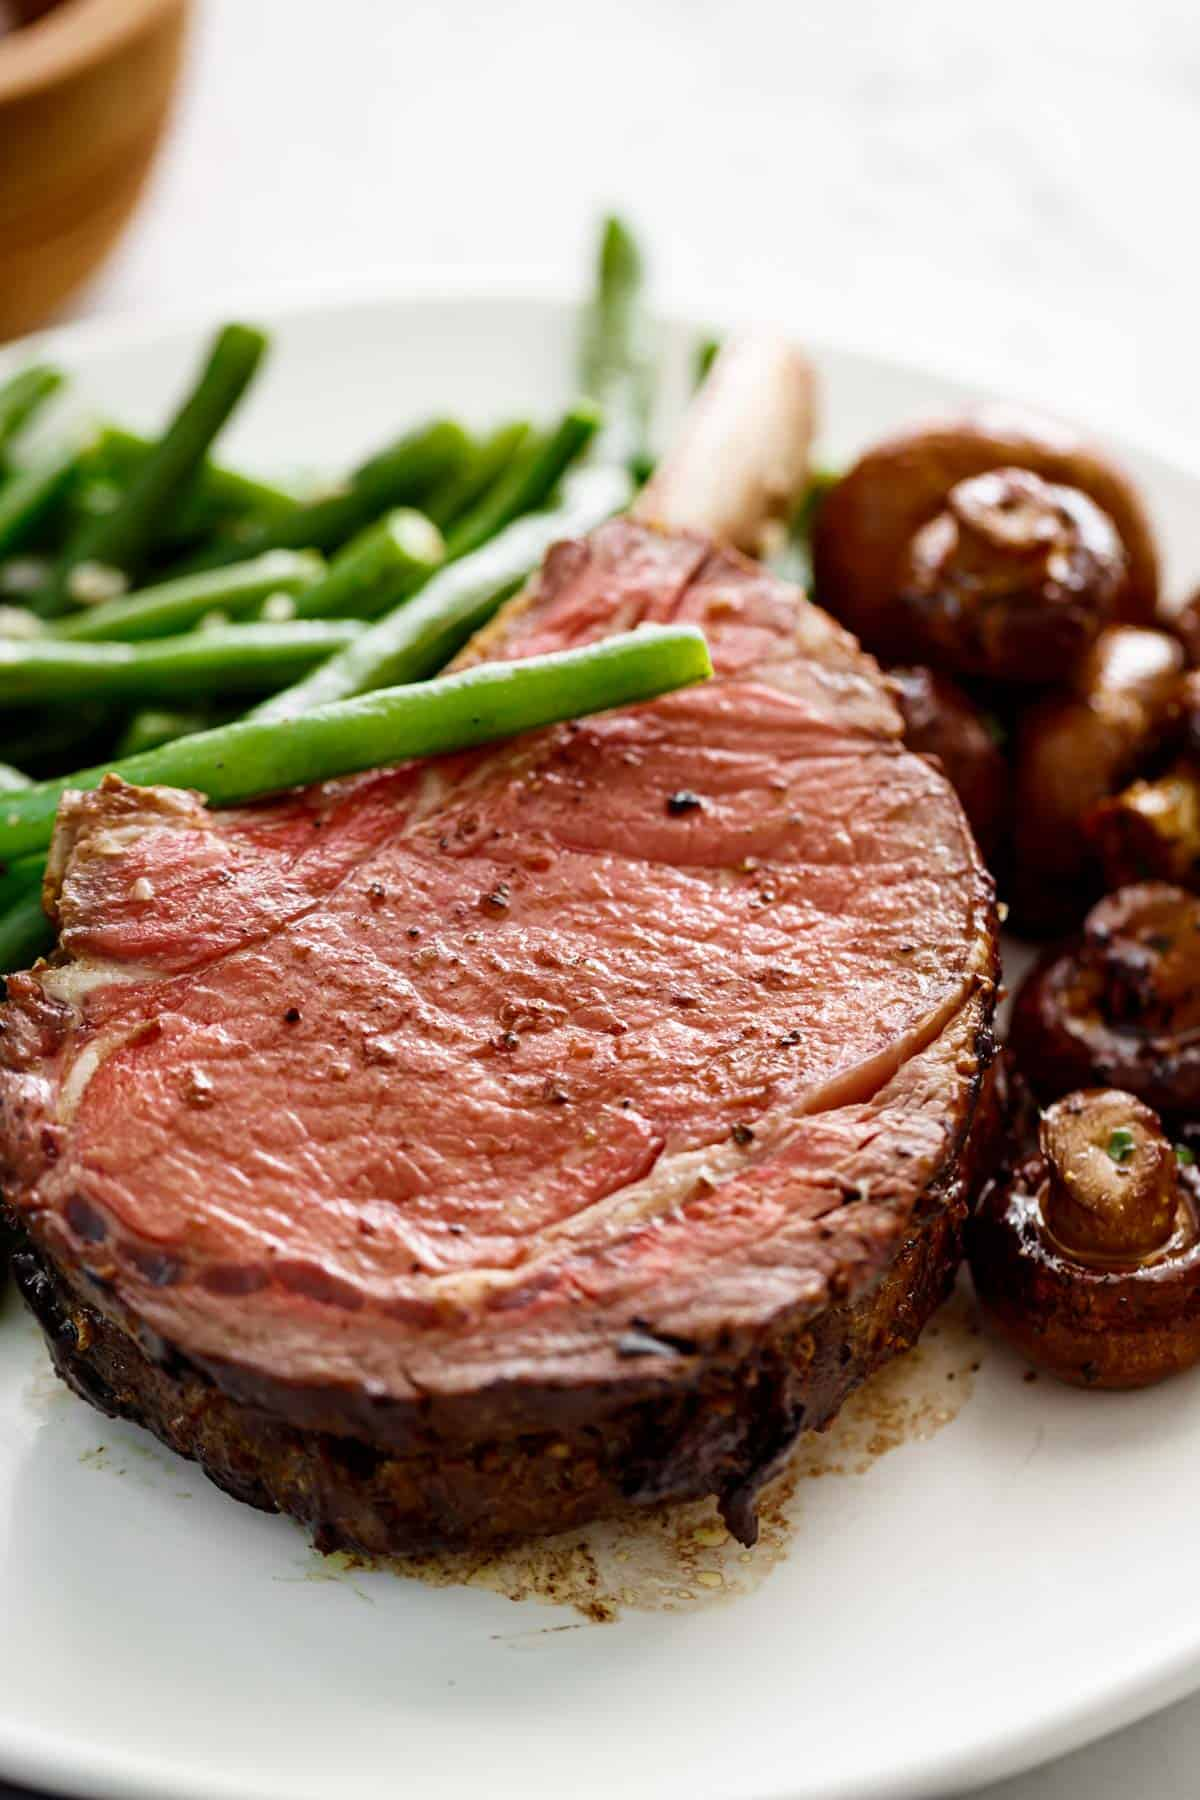 Prime Rib with garlic butter served with green beans and mushrooms | cafedelites.com